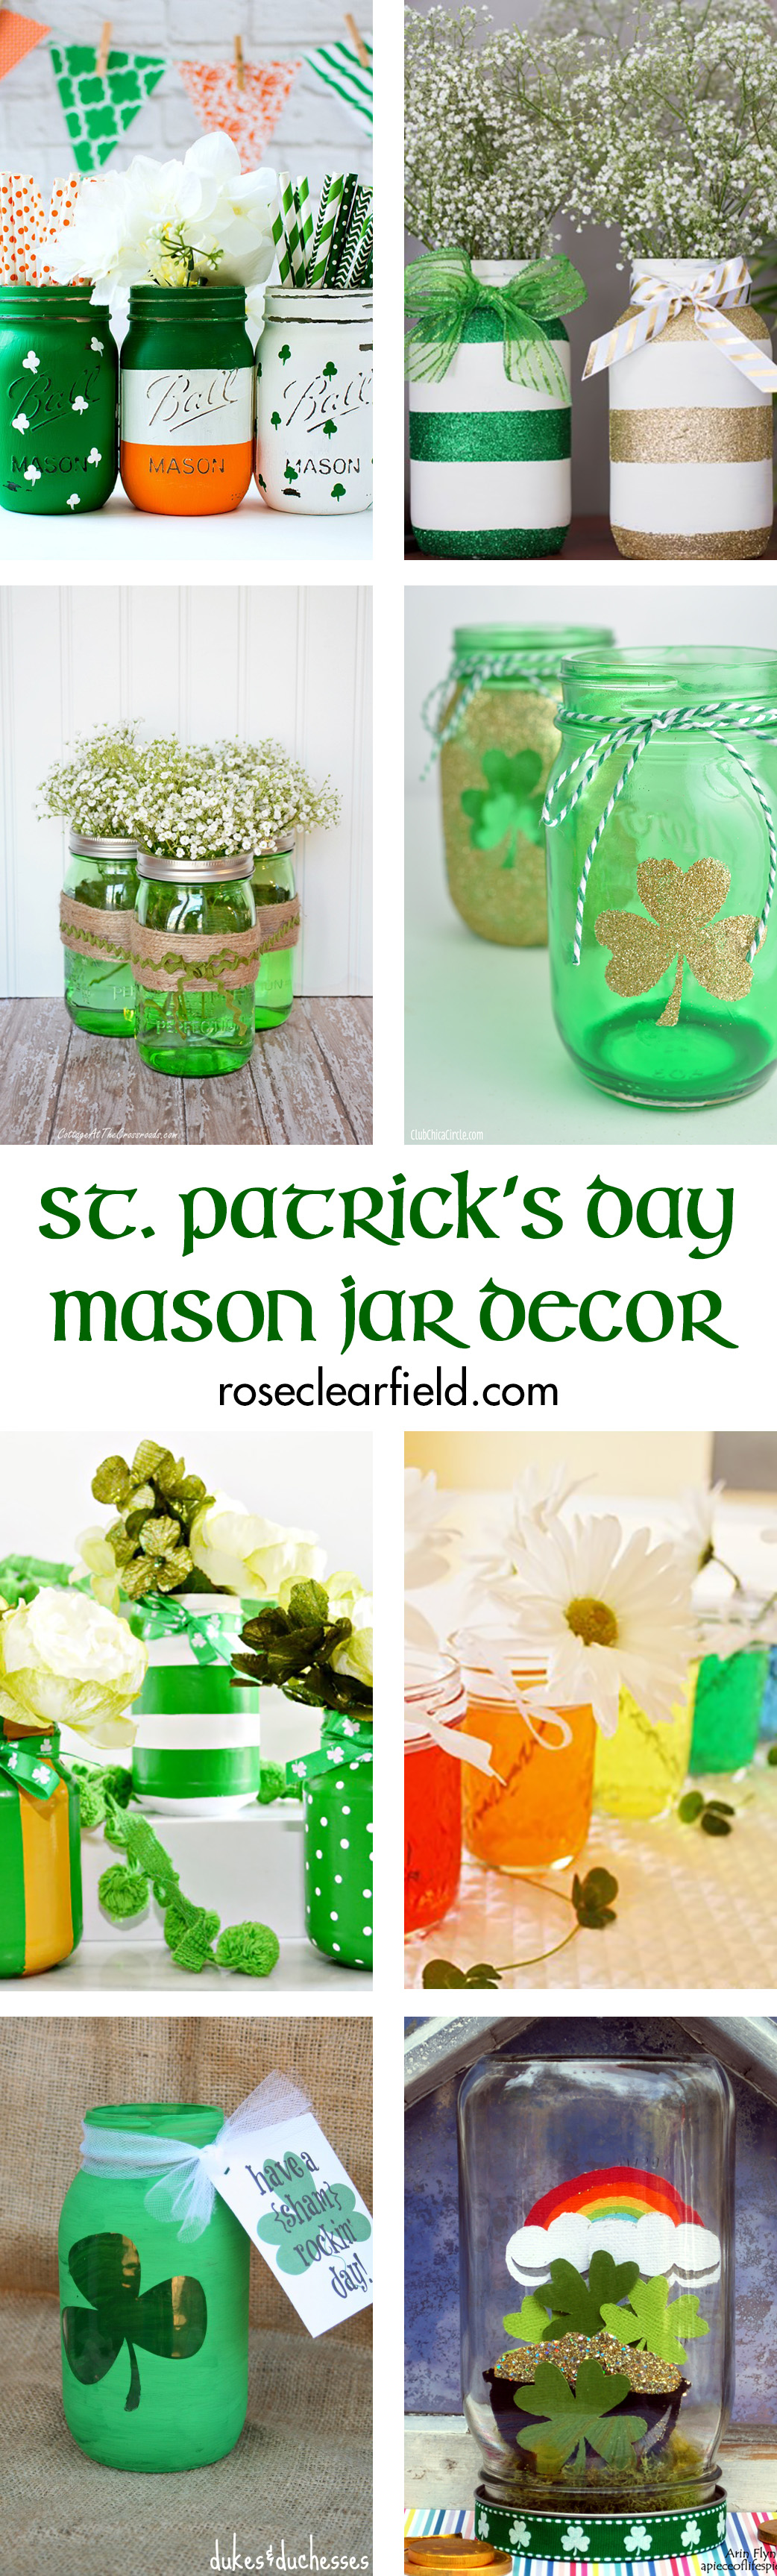 St. Patrick's Day Mason Jar Decor | http://www.roseclearfield.com